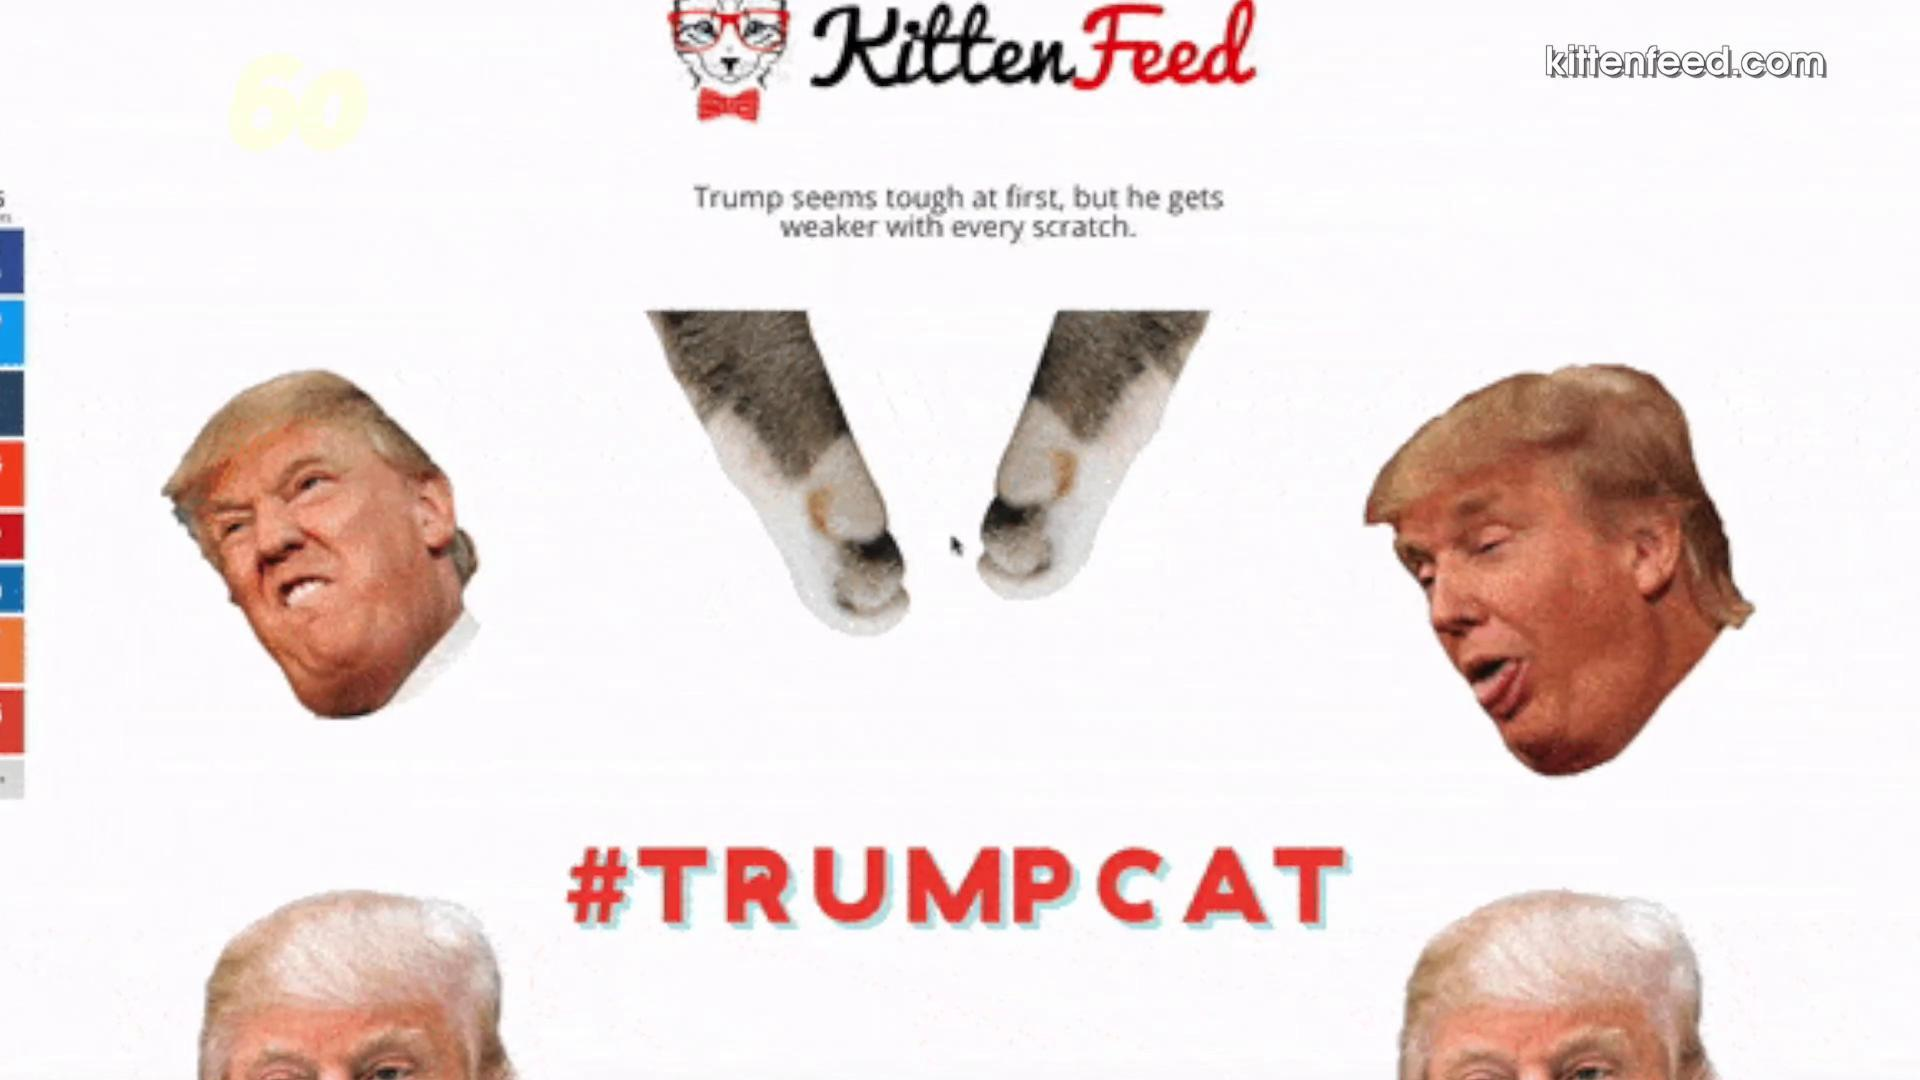 President Trump Shuts Down Teen's Site of Kittens Punching Him